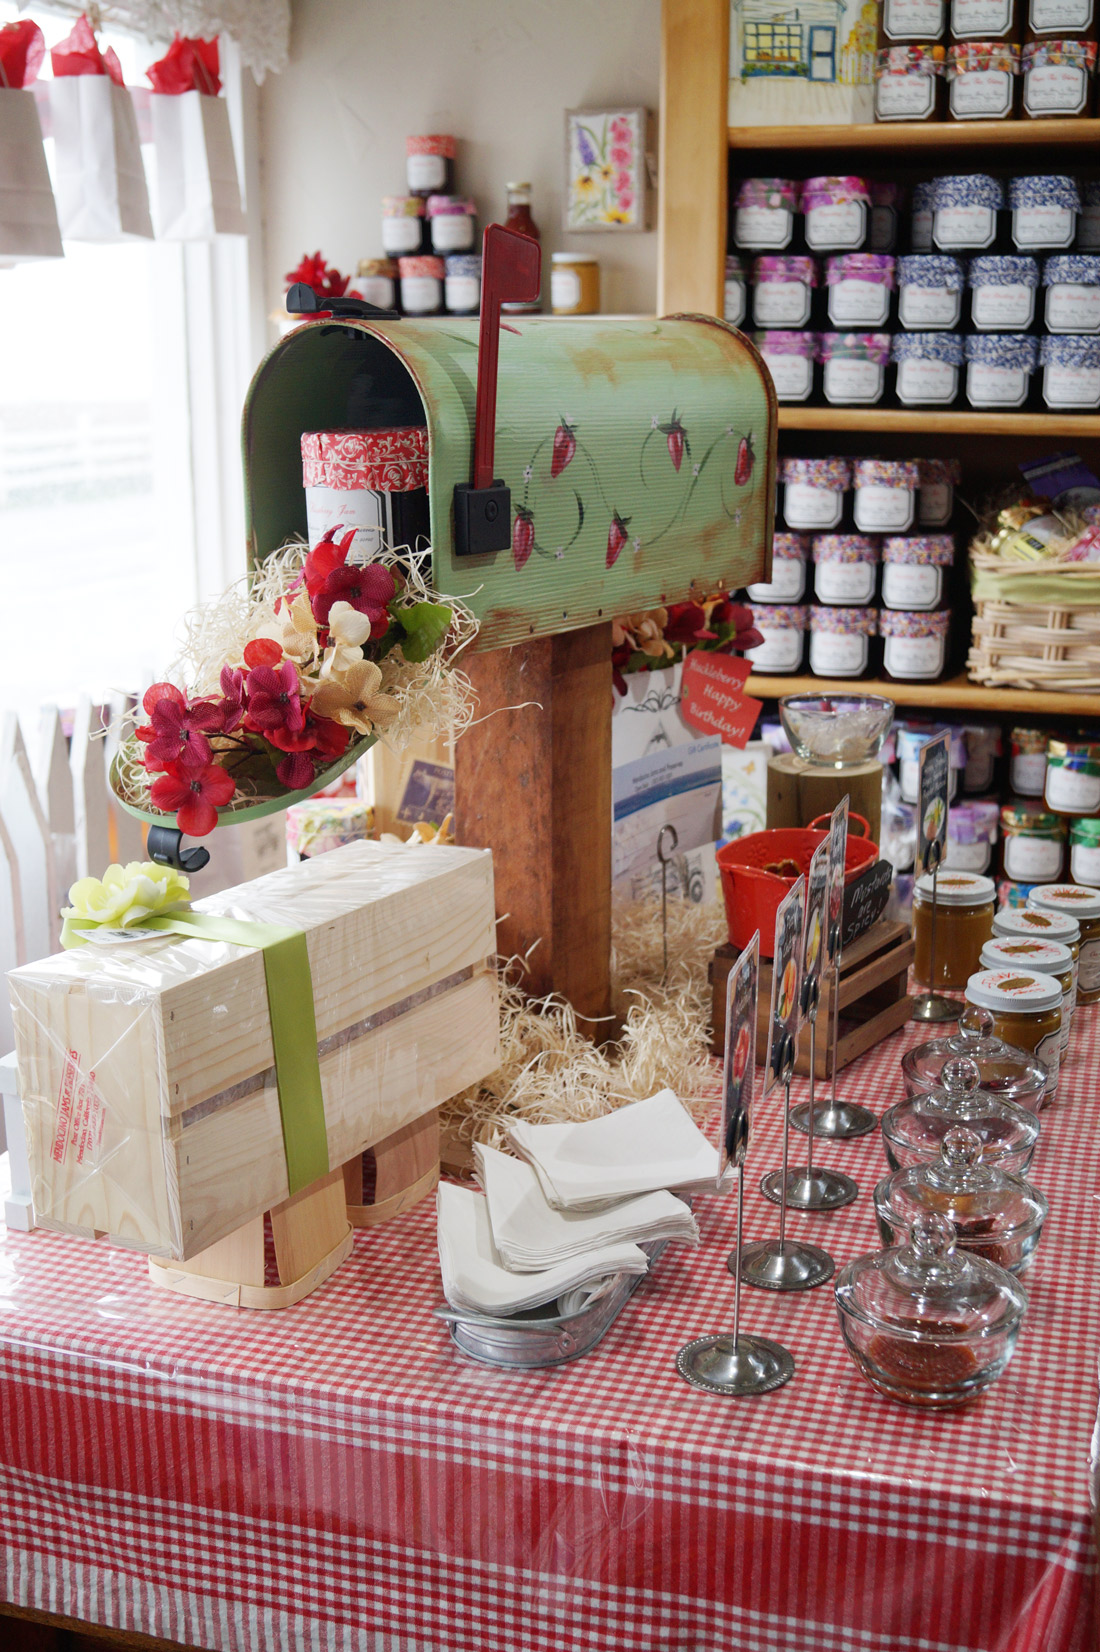 bag-at-you-travel-blog-jam-and-preserves-in-mendocino